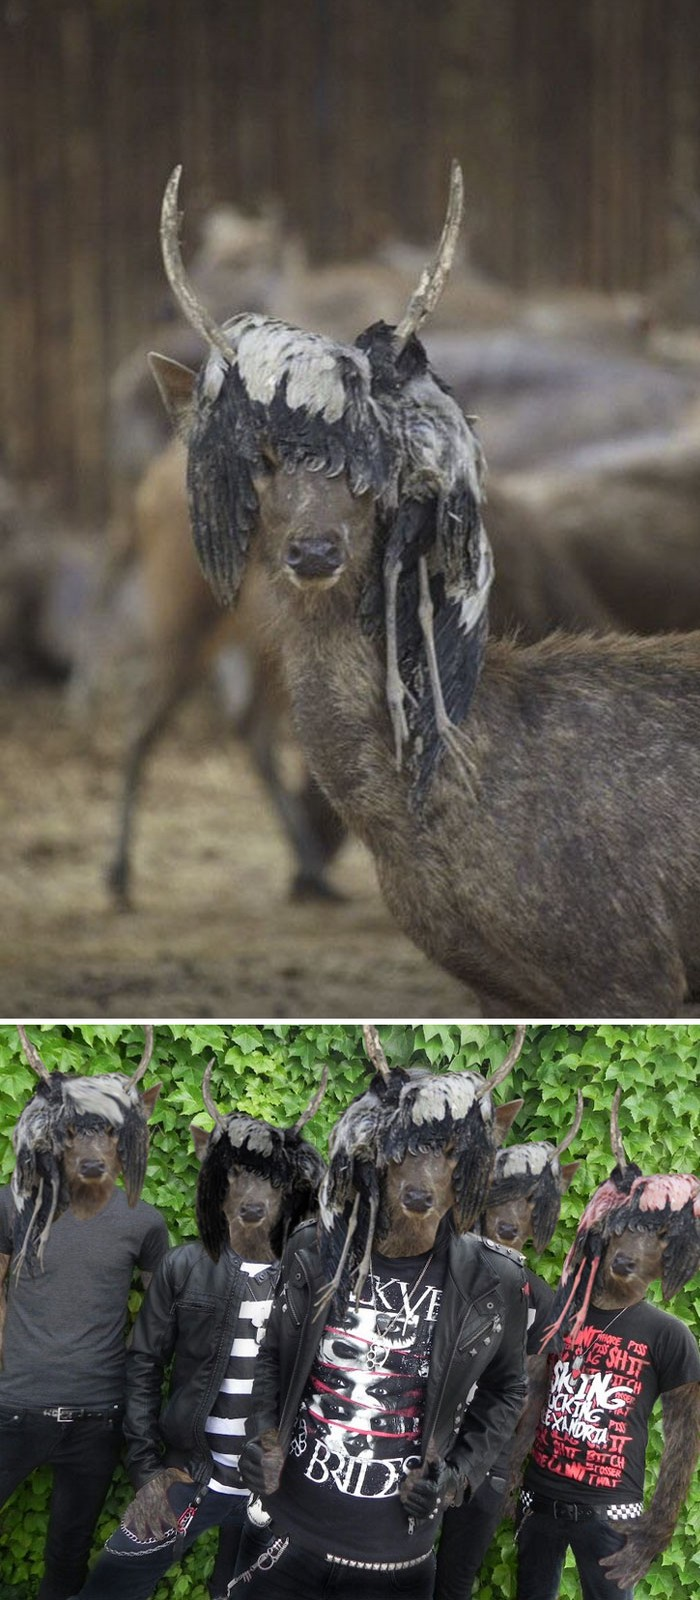 11 Epic Photoshop Battles - This deer wearing a dead bird wig!